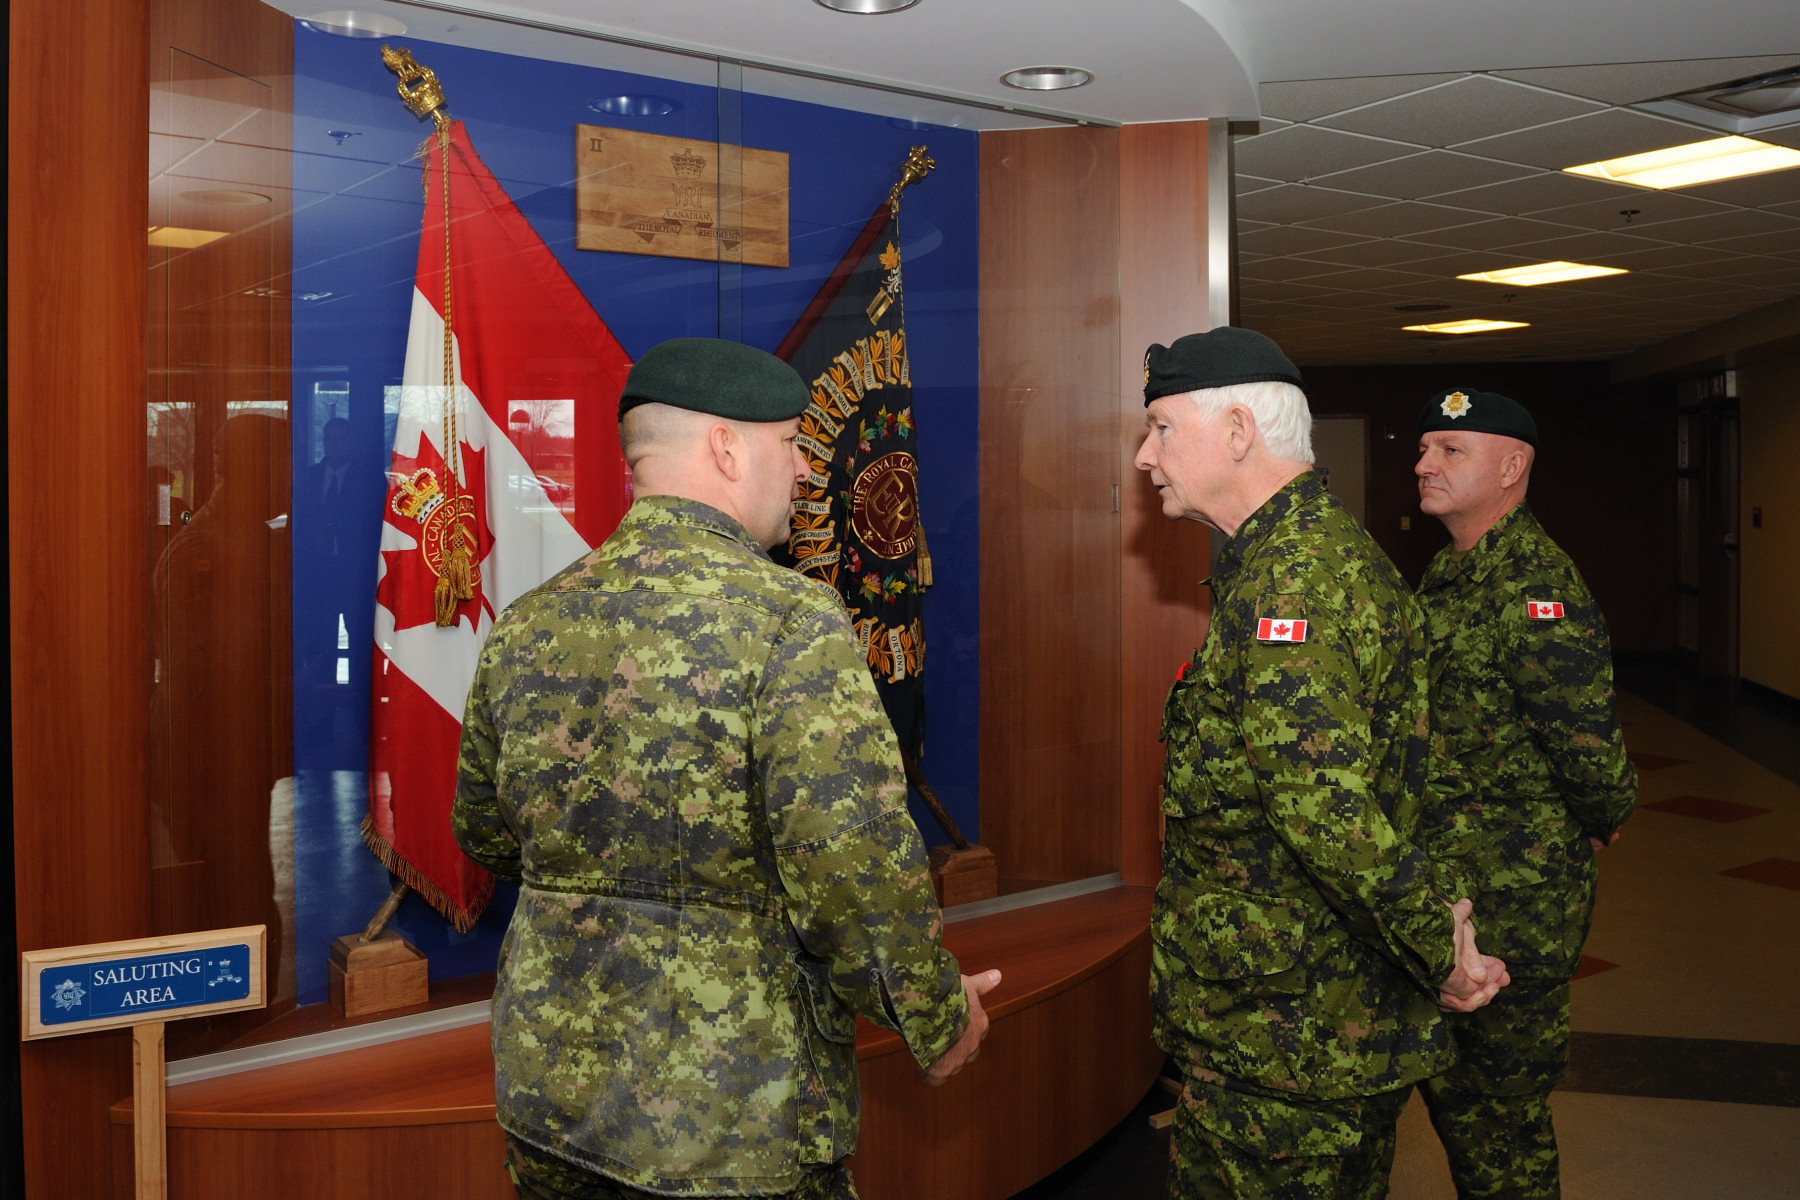 Before leaving New Brunswick, His Excellency the Right Honourable David Johnston, Governor General and Commander-in-Chief of Canada, visited the 2nd Battalion of the Royal Canadian Regiment at CFB Gagetown in Oromocto, New Brunswick.